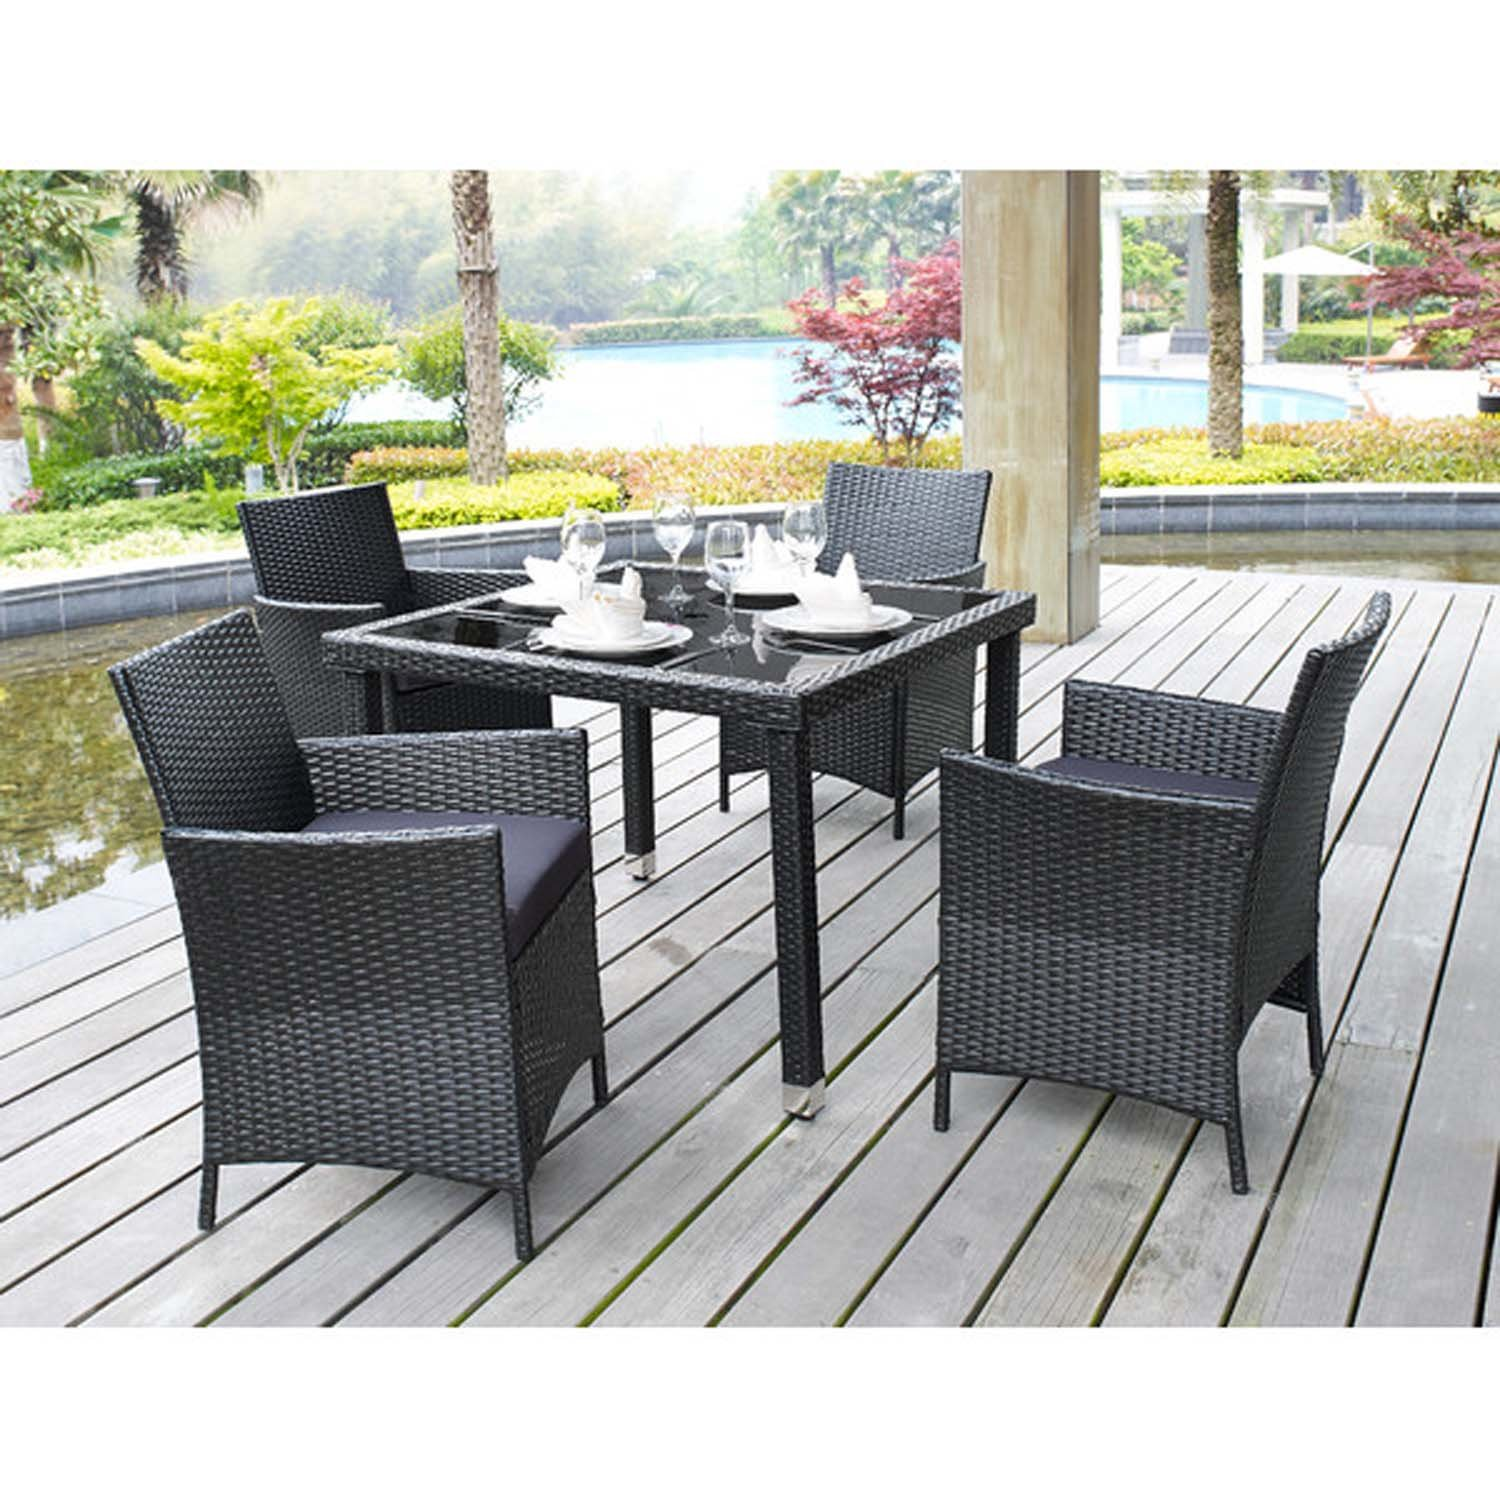 amazon com 5 piece outdoor patio dining set with cushions uv